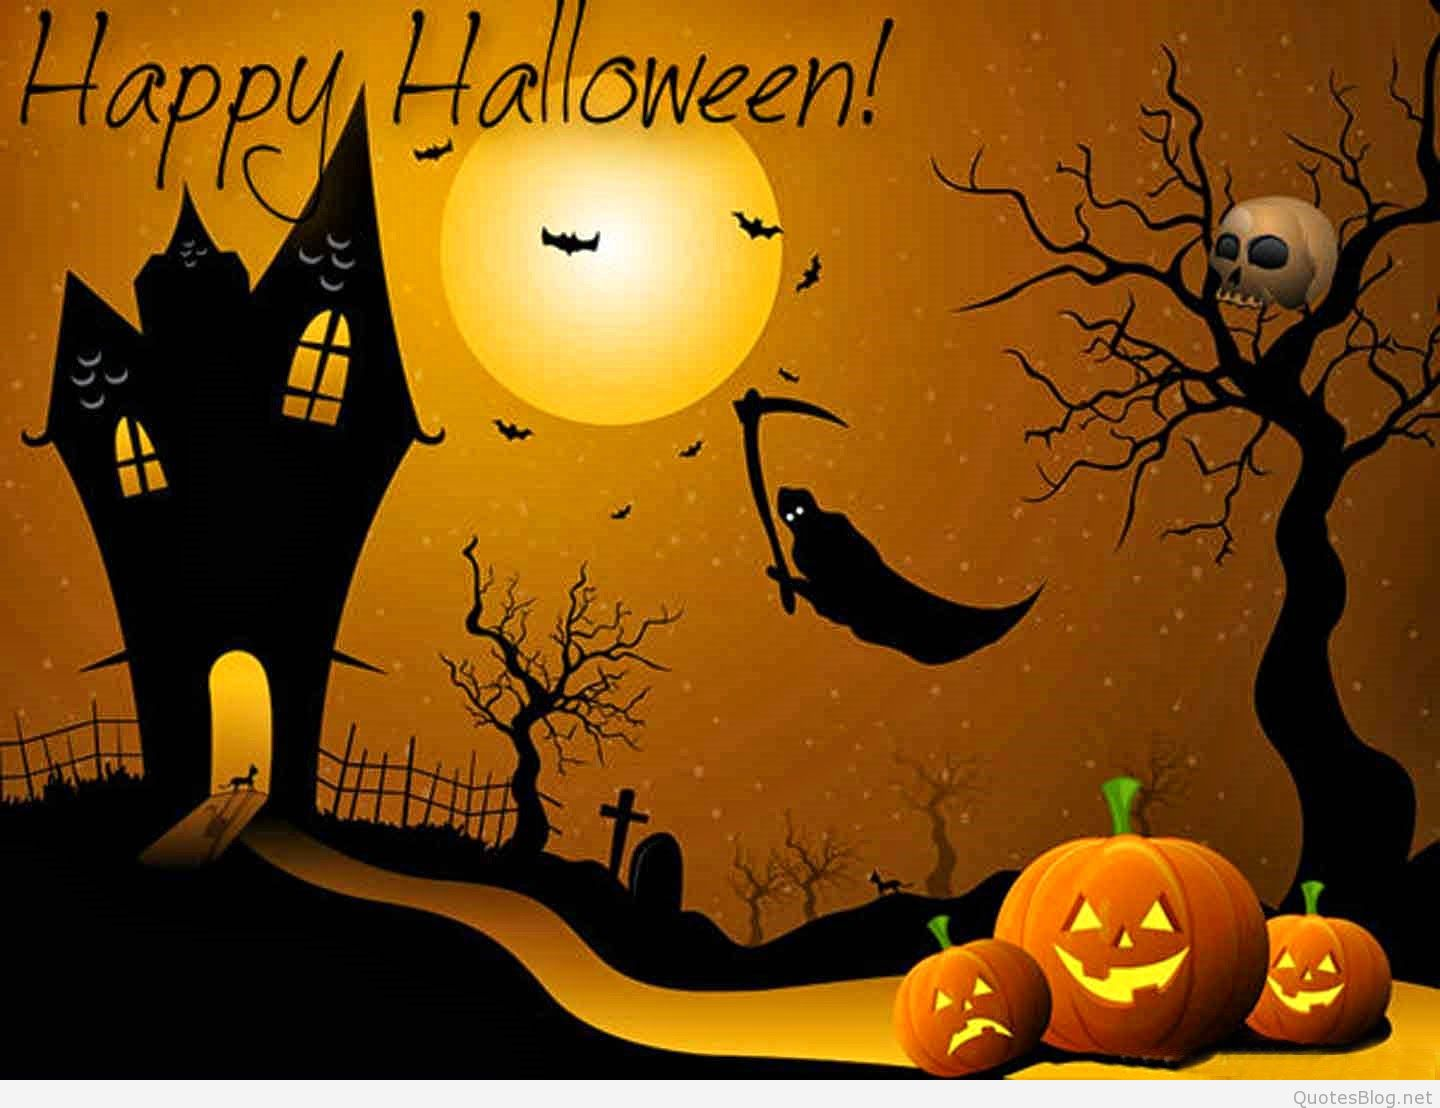 Halloween day 2016 wishes quotes sms message cards and hd wallpapers m4hsunfo